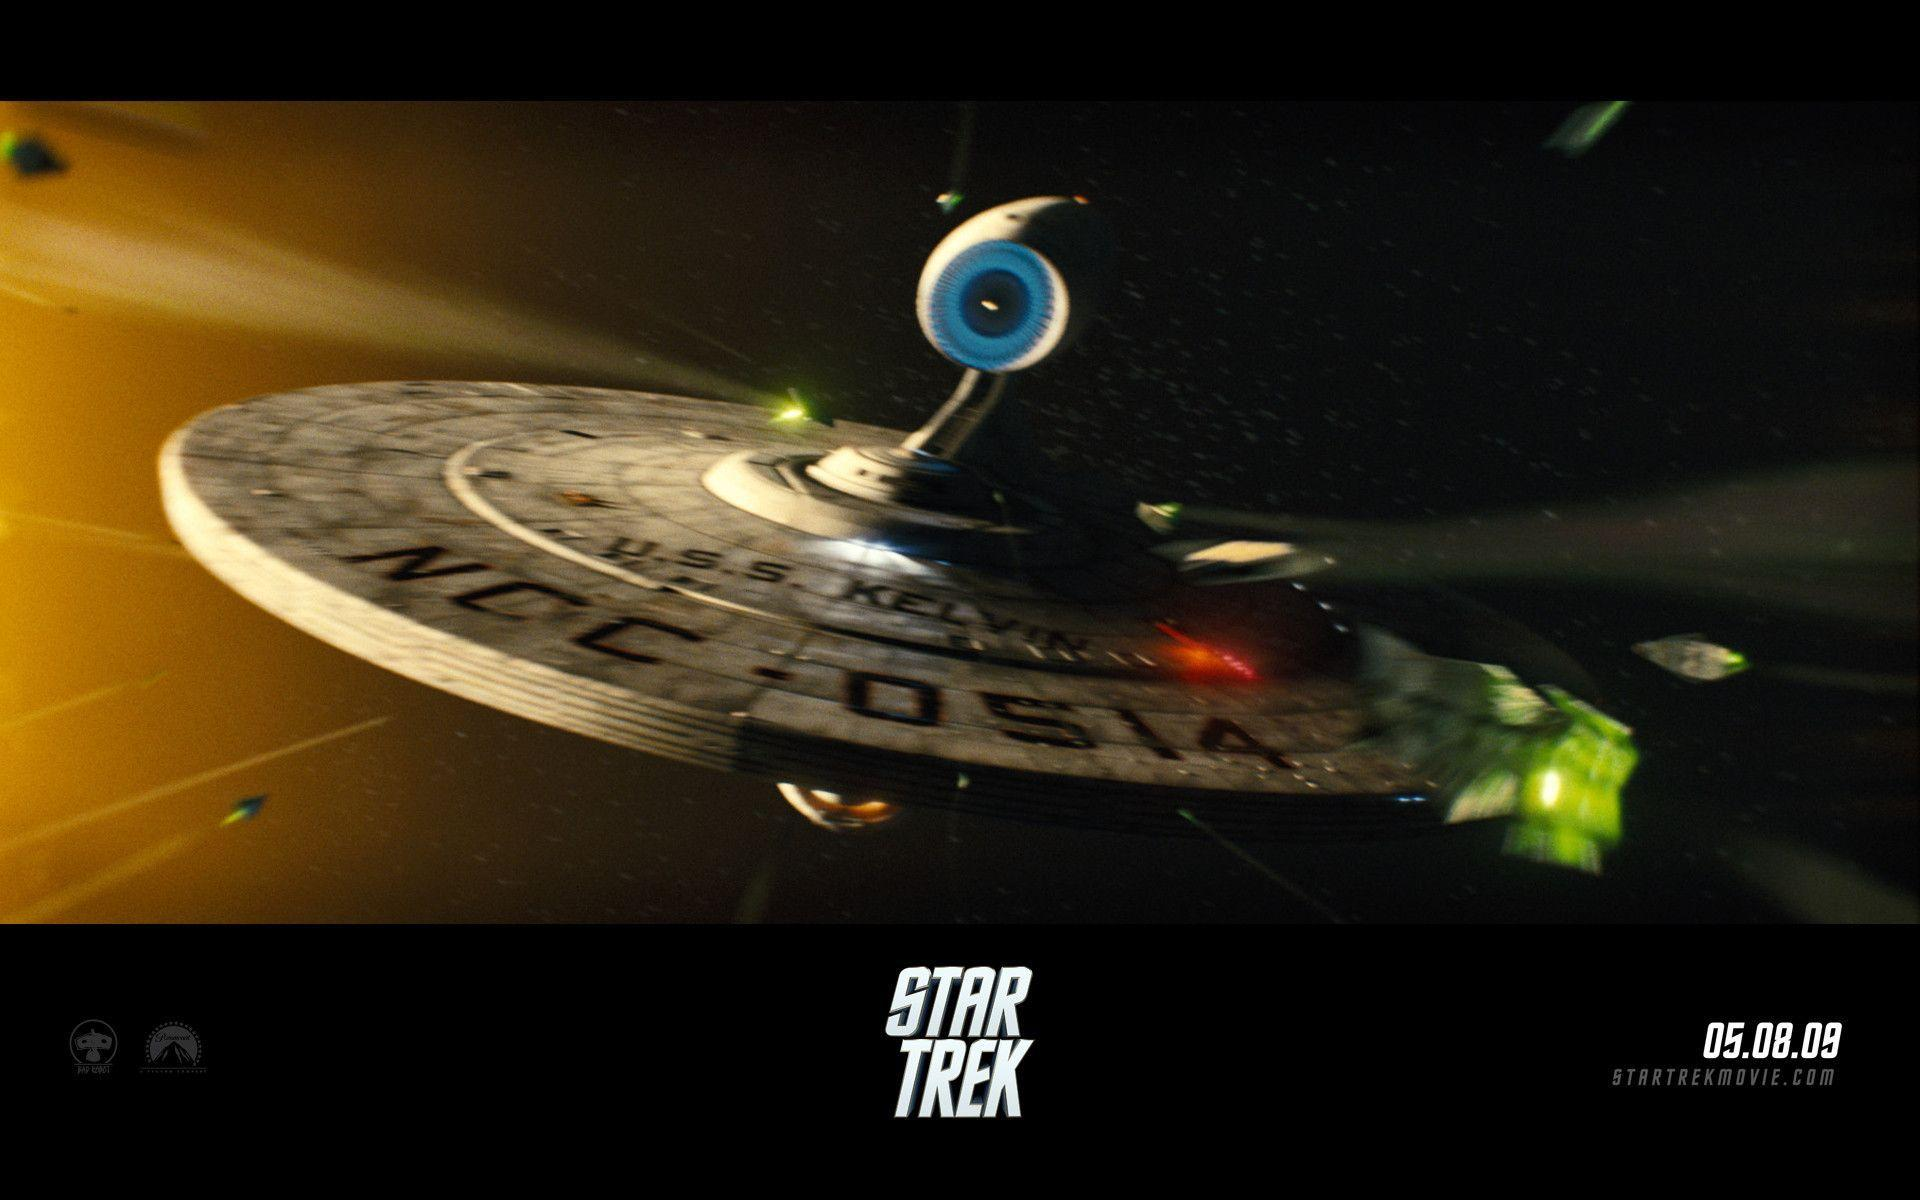 star trek wallpaper by - photo #46